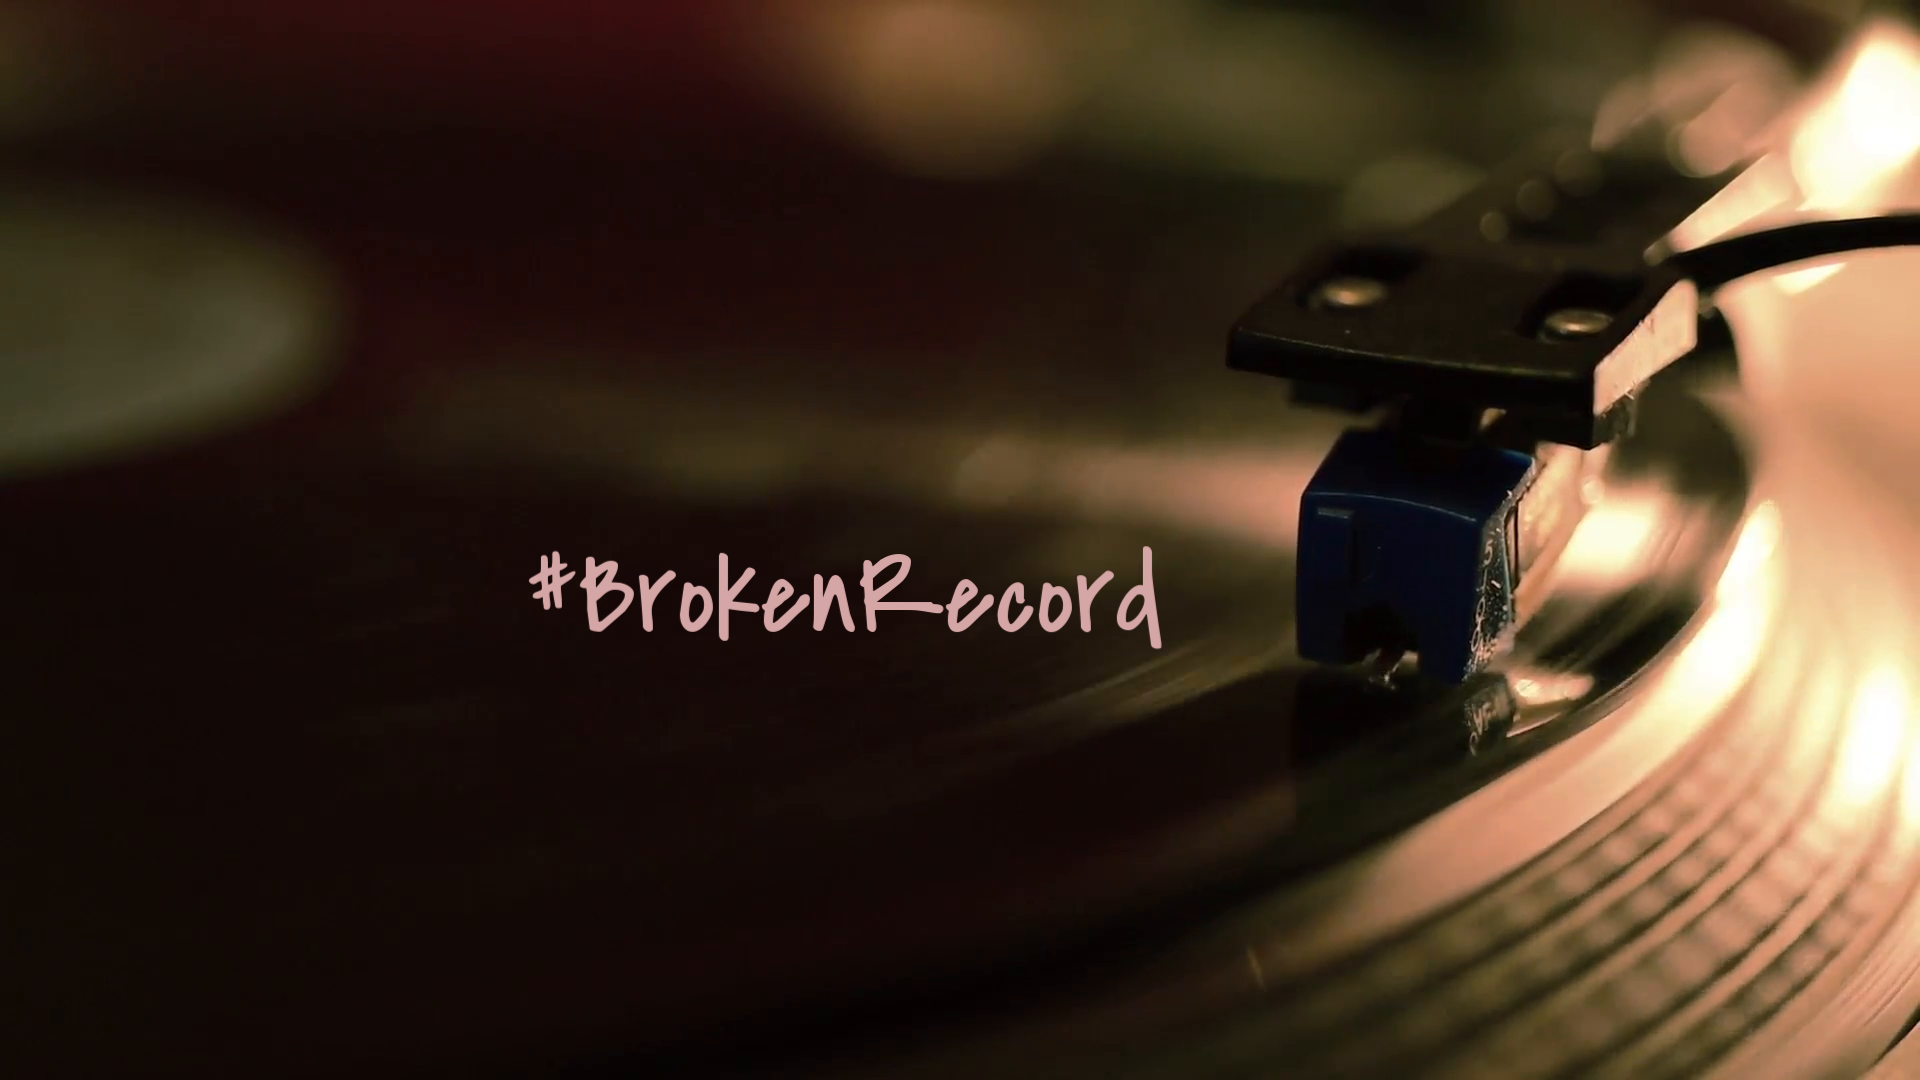 a-vintage-record-player-plays-a-vinyl-record-dolly-shot-pans-left-to-right-to-reveal-a-close-up-shot-of-a-hand-placing-the-needle-on-the-record_noblpm1ol__F0010.png